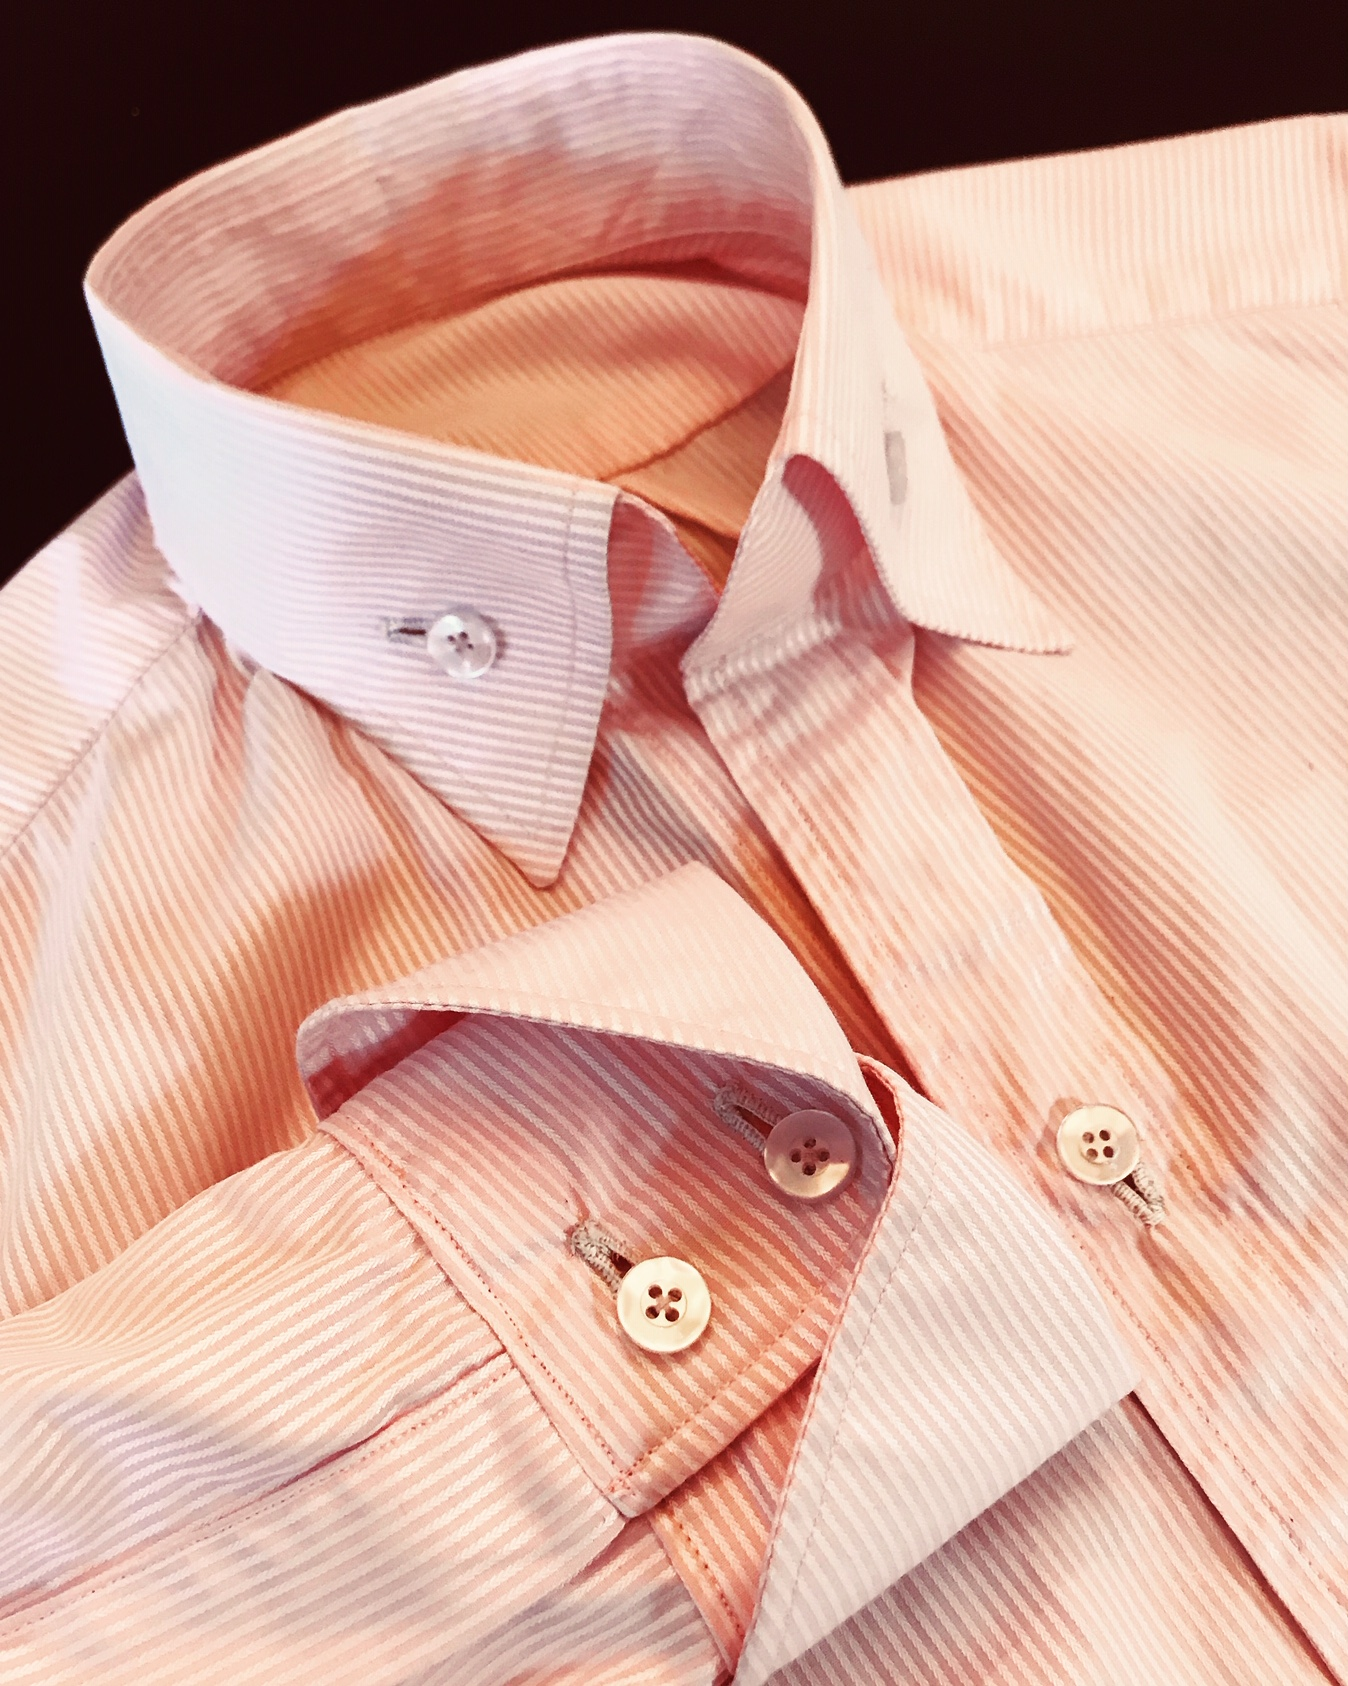 making your own clothes details on button down collar cocktail cuffs mens shirt